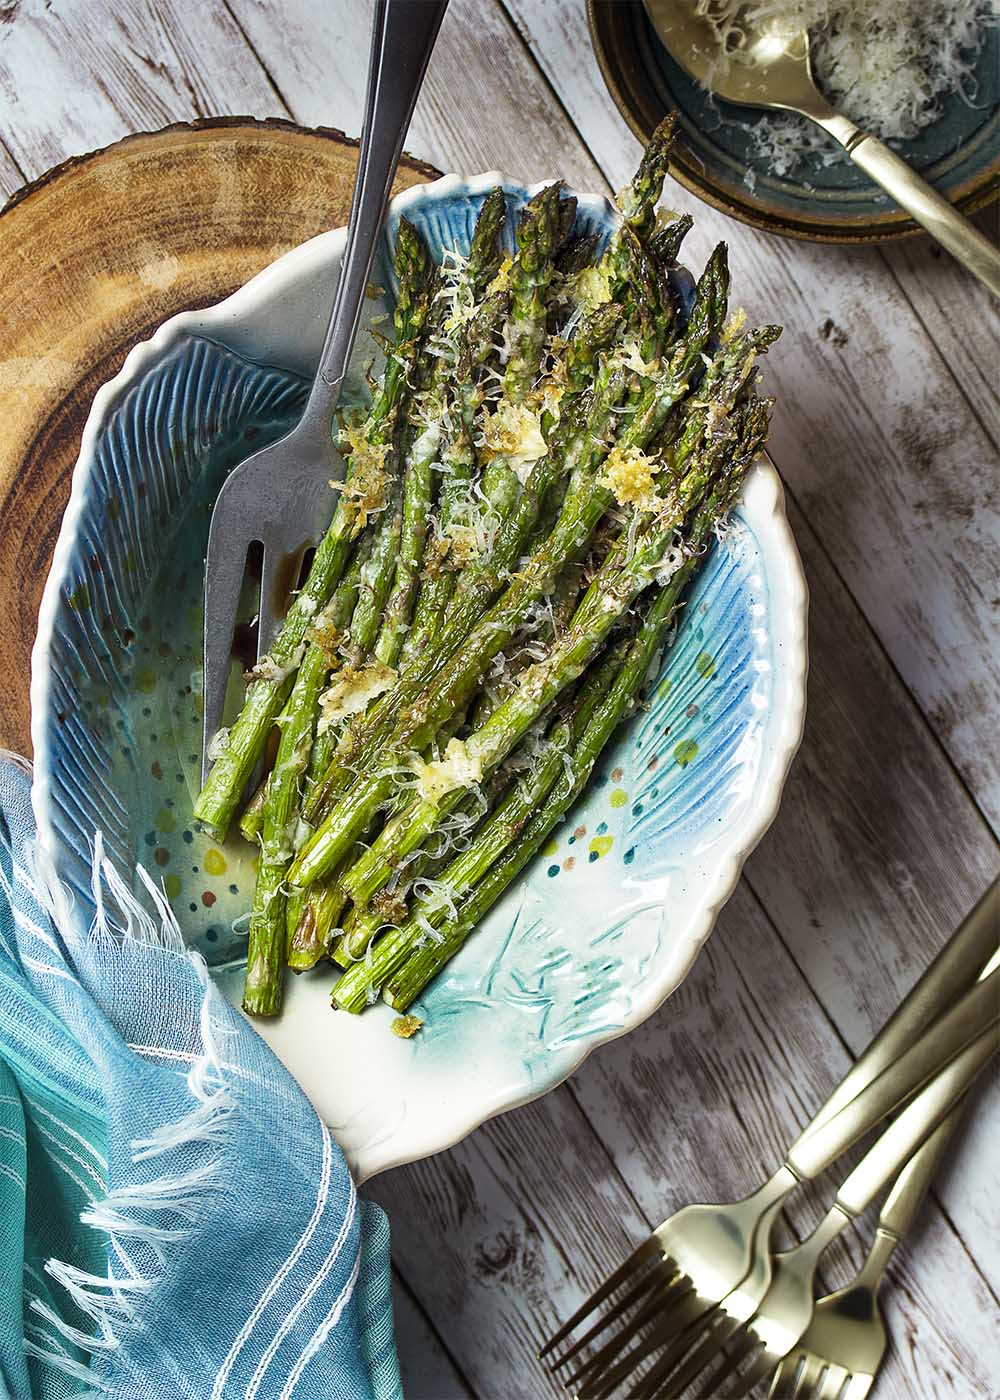 A serving bowl filled with roasted asparagus topped with crispy parmesan. Serving fork in the bowl. More forks on the table.